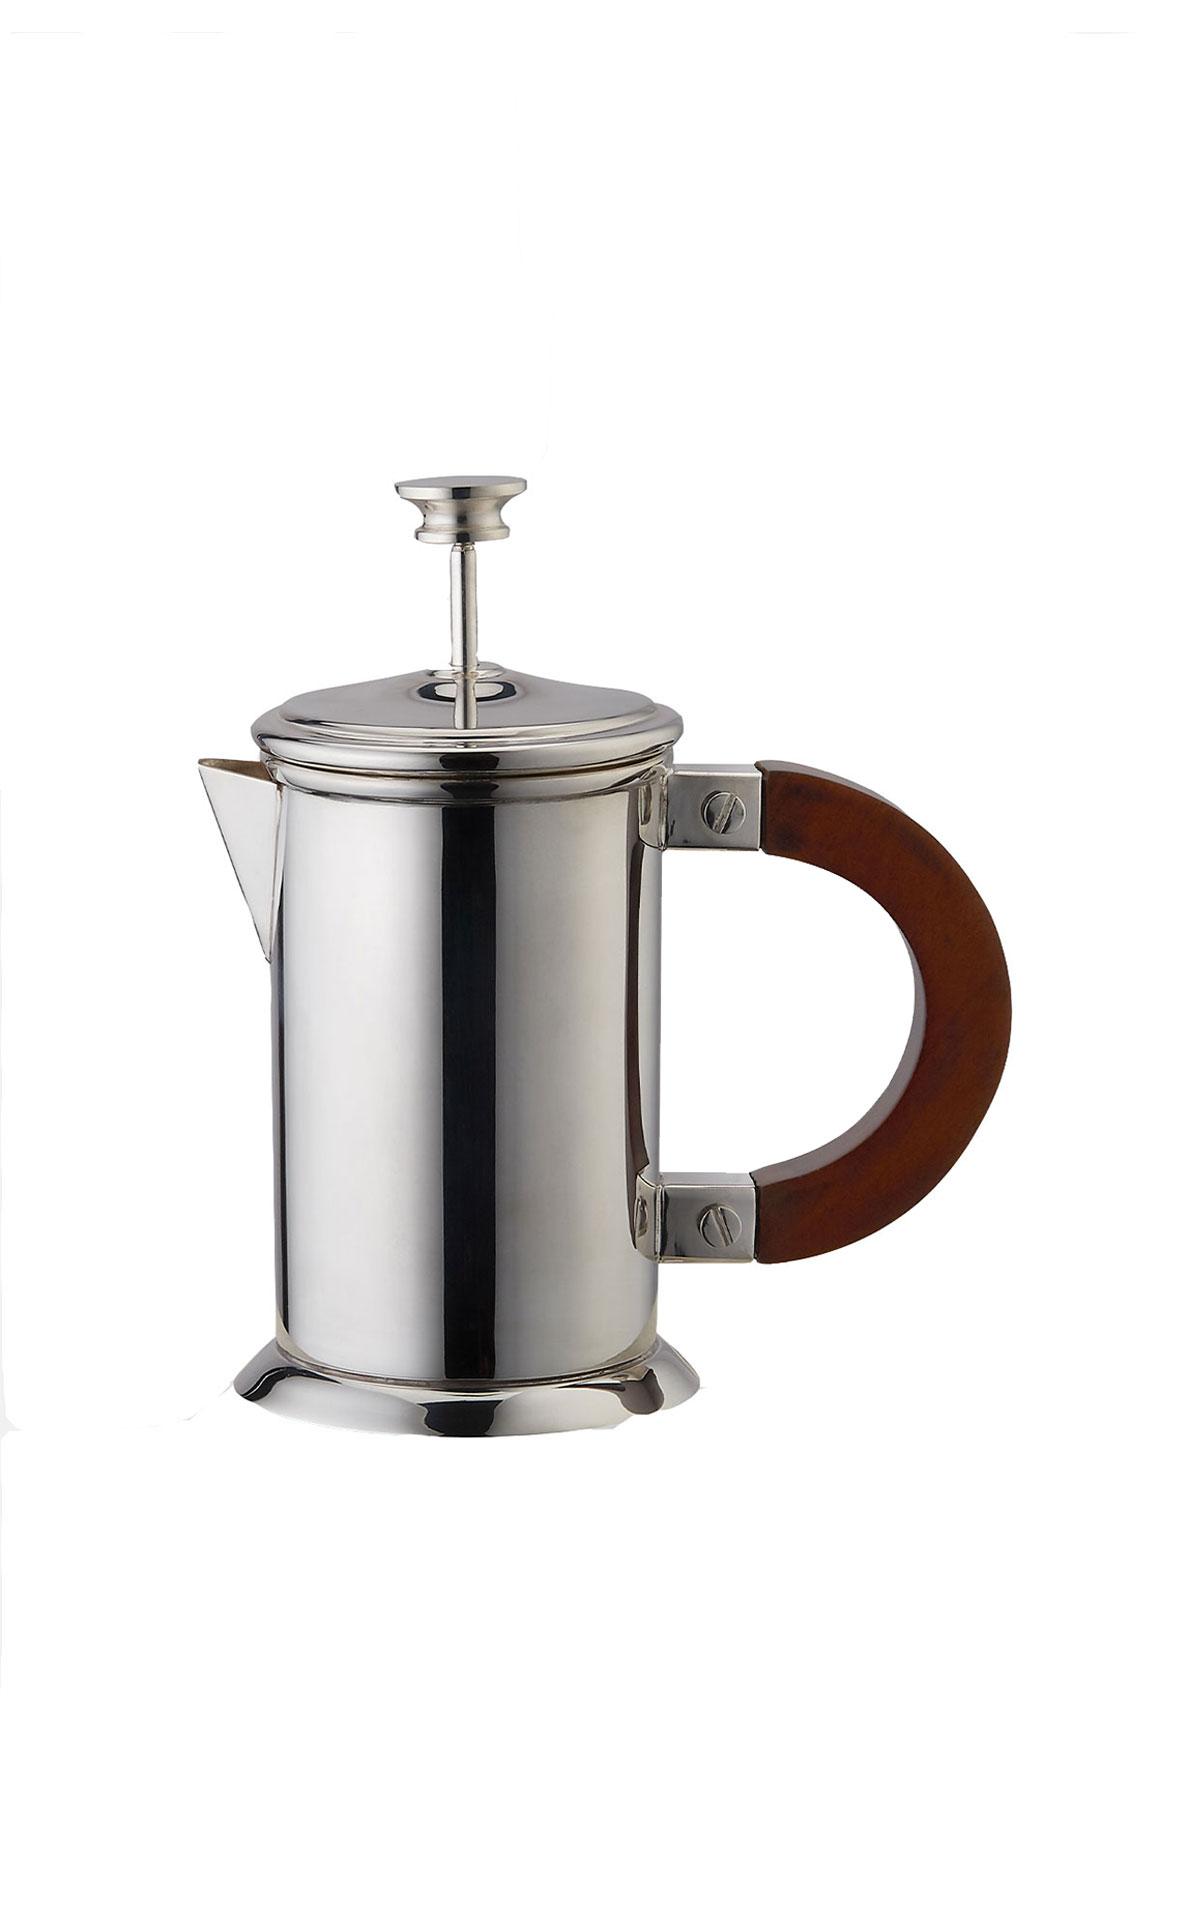 Soho Home Audley silver small coffee press from Bicester Village